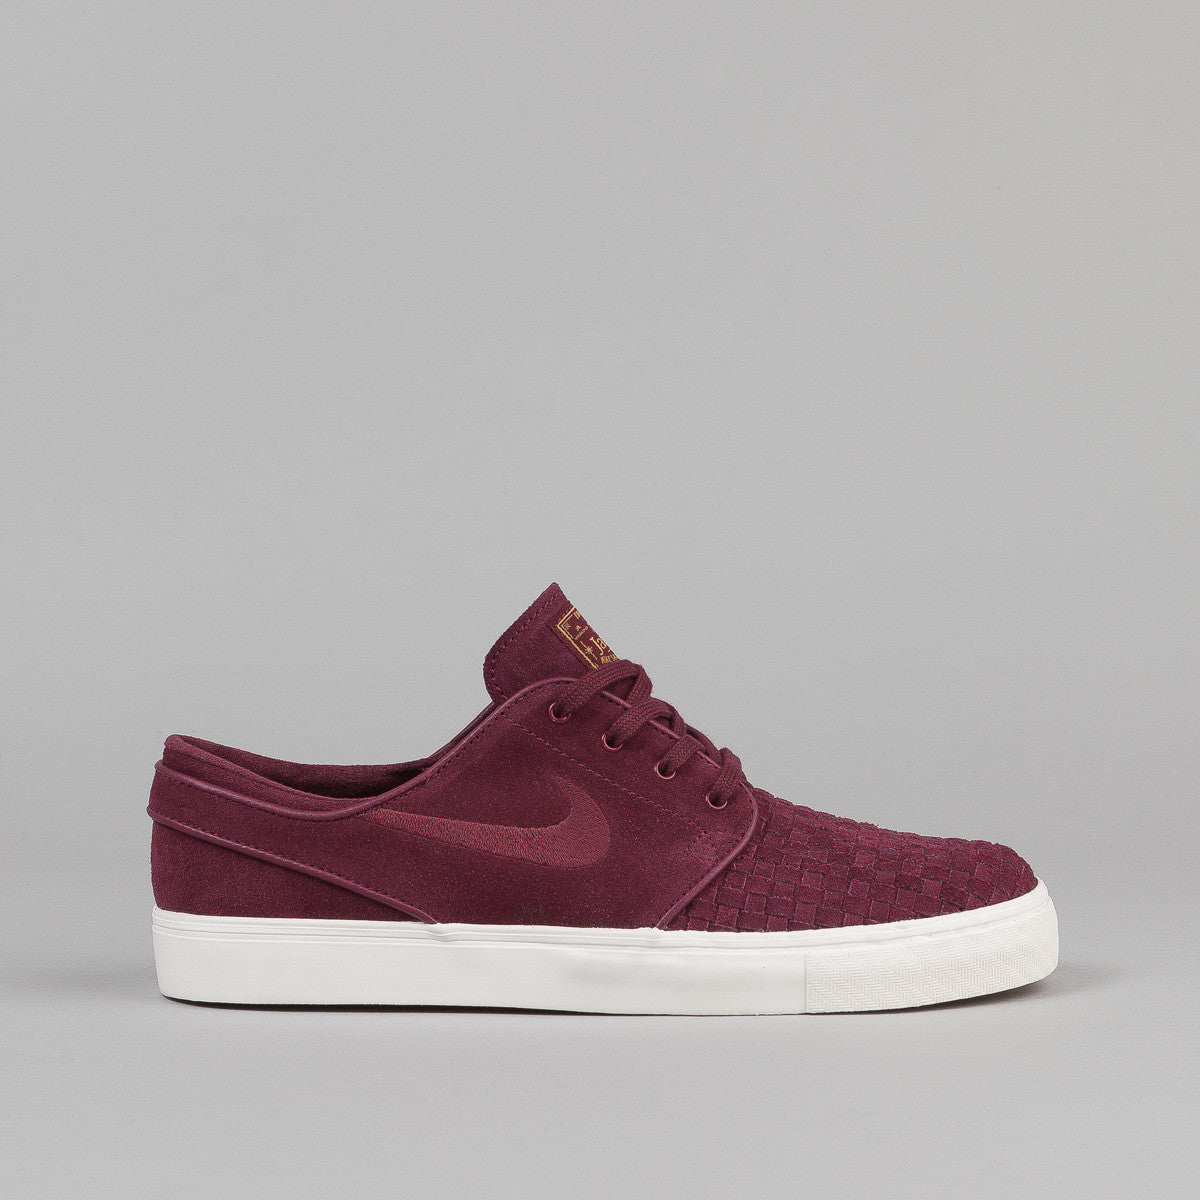 Nike SB Stefan Janoski Shoes - Night Chestnut Red / Night Chestnut Red - Ivory - Metallic Gold